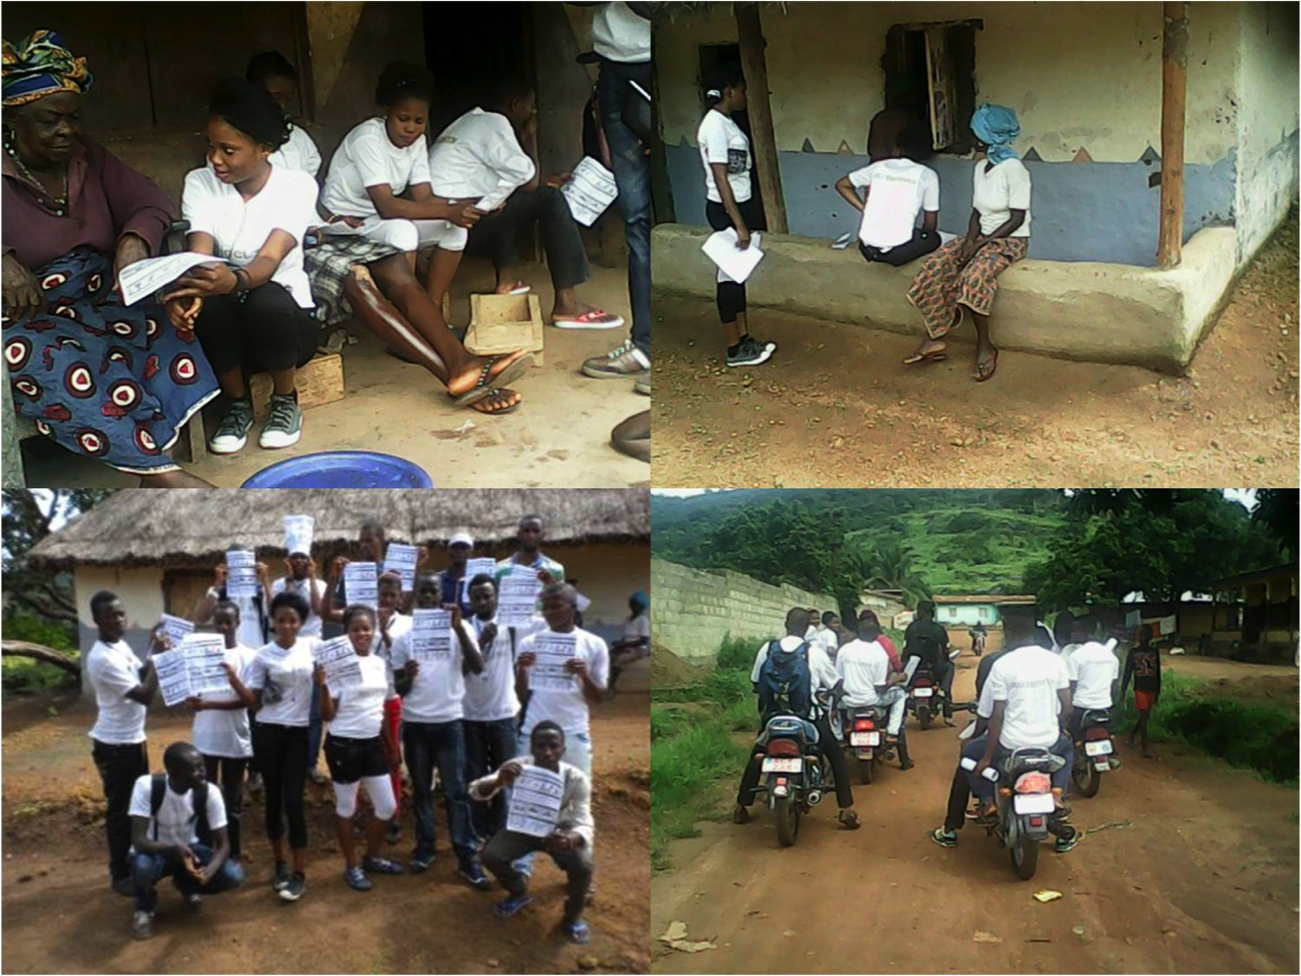 Project1808 Youth Organize to sensitize community on the Ebola virus